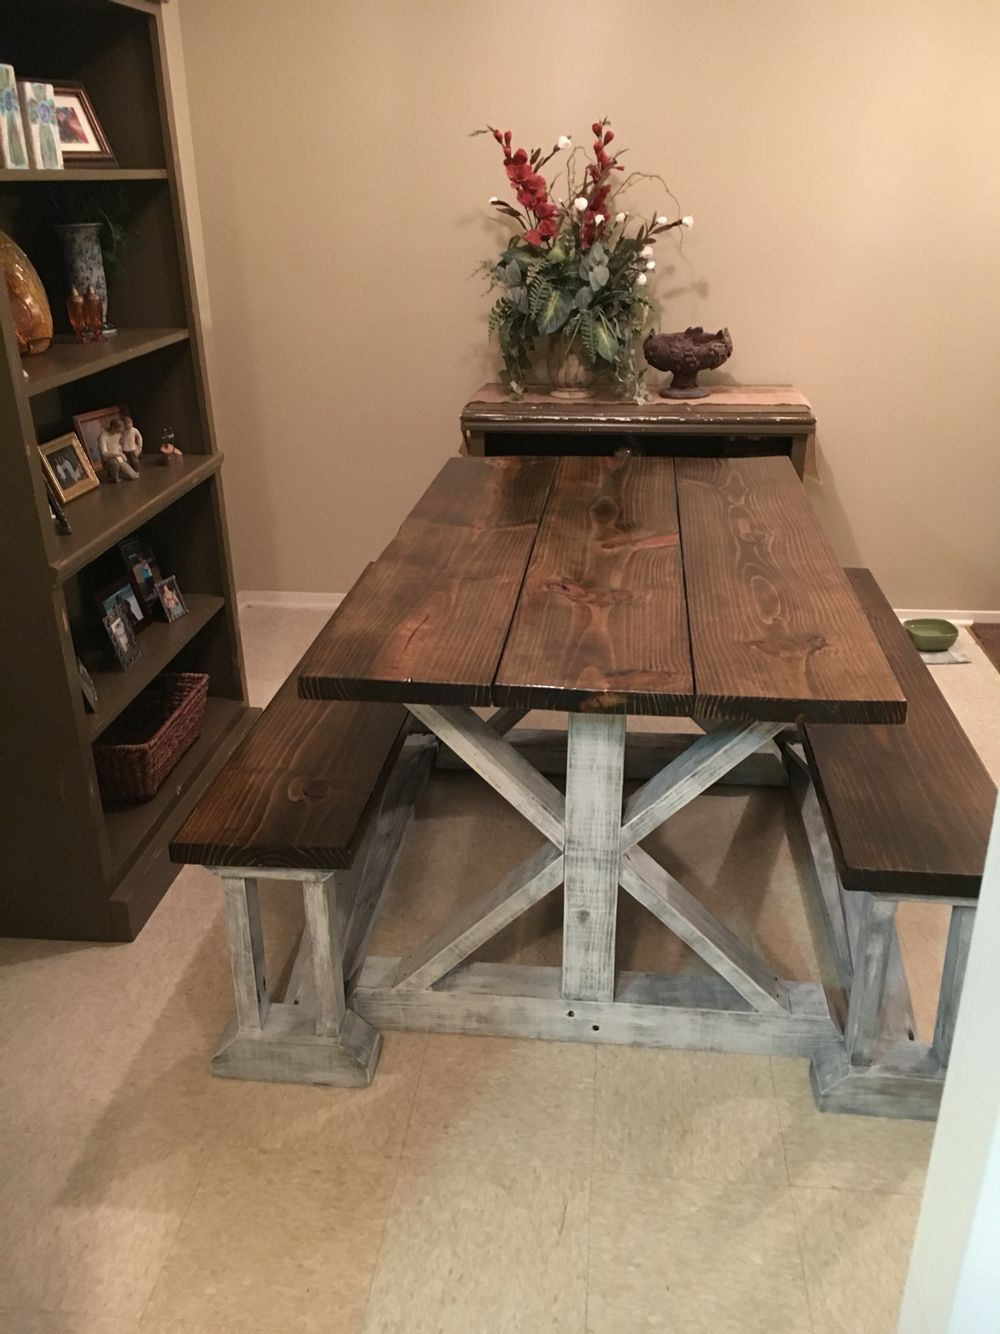 Handmade farmhouse table with benches handmade furniture http amzn to